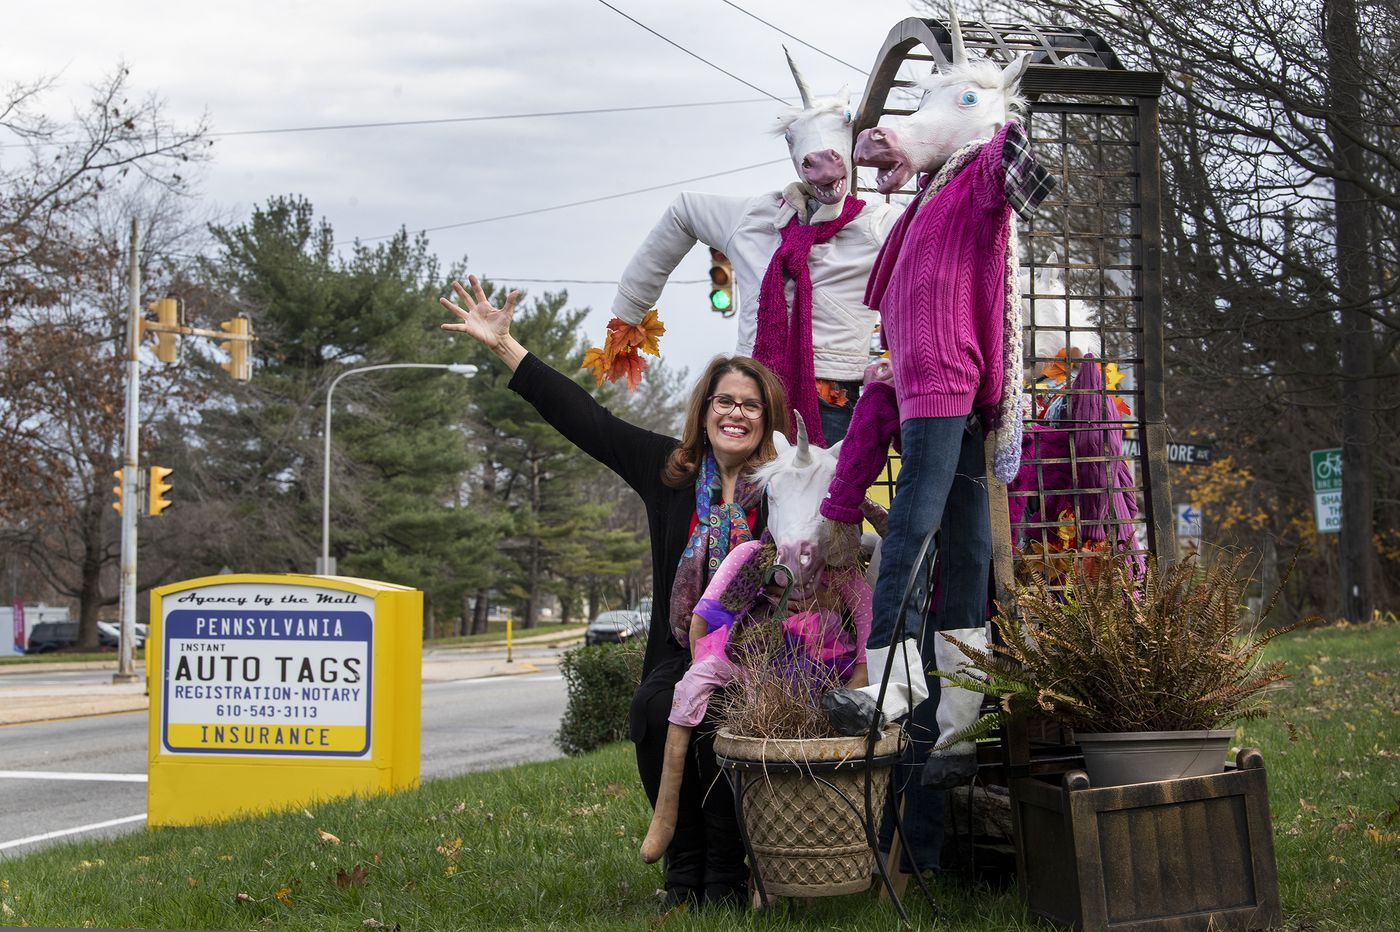 The lawn displays at her Delco biz are so legendary she's gone to court for them | We The People